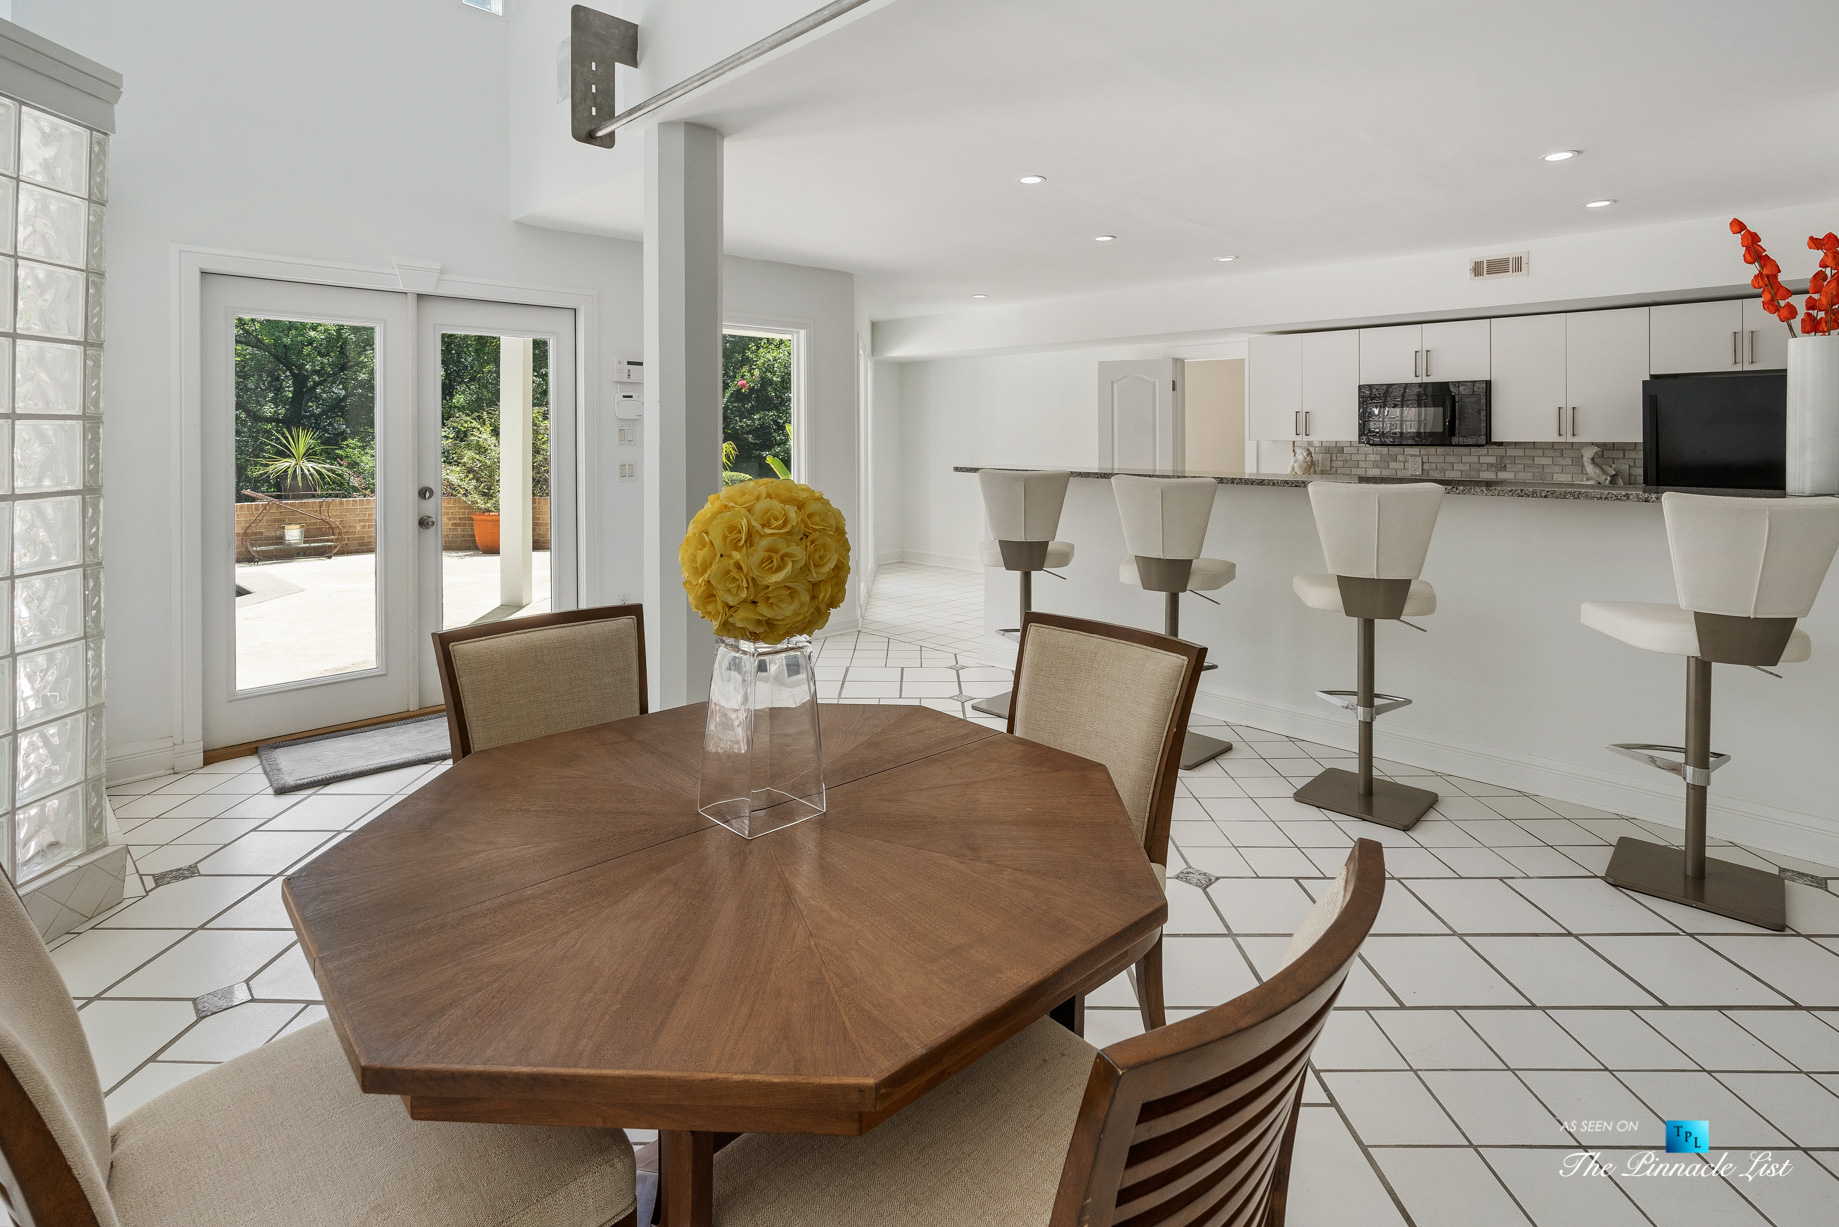 3906 Paces Ferry Rd NW, Atlanta, GA, USA - Basement Recreation Room and Summer Kitchen - Luxury Real Estate - Buckhead Home